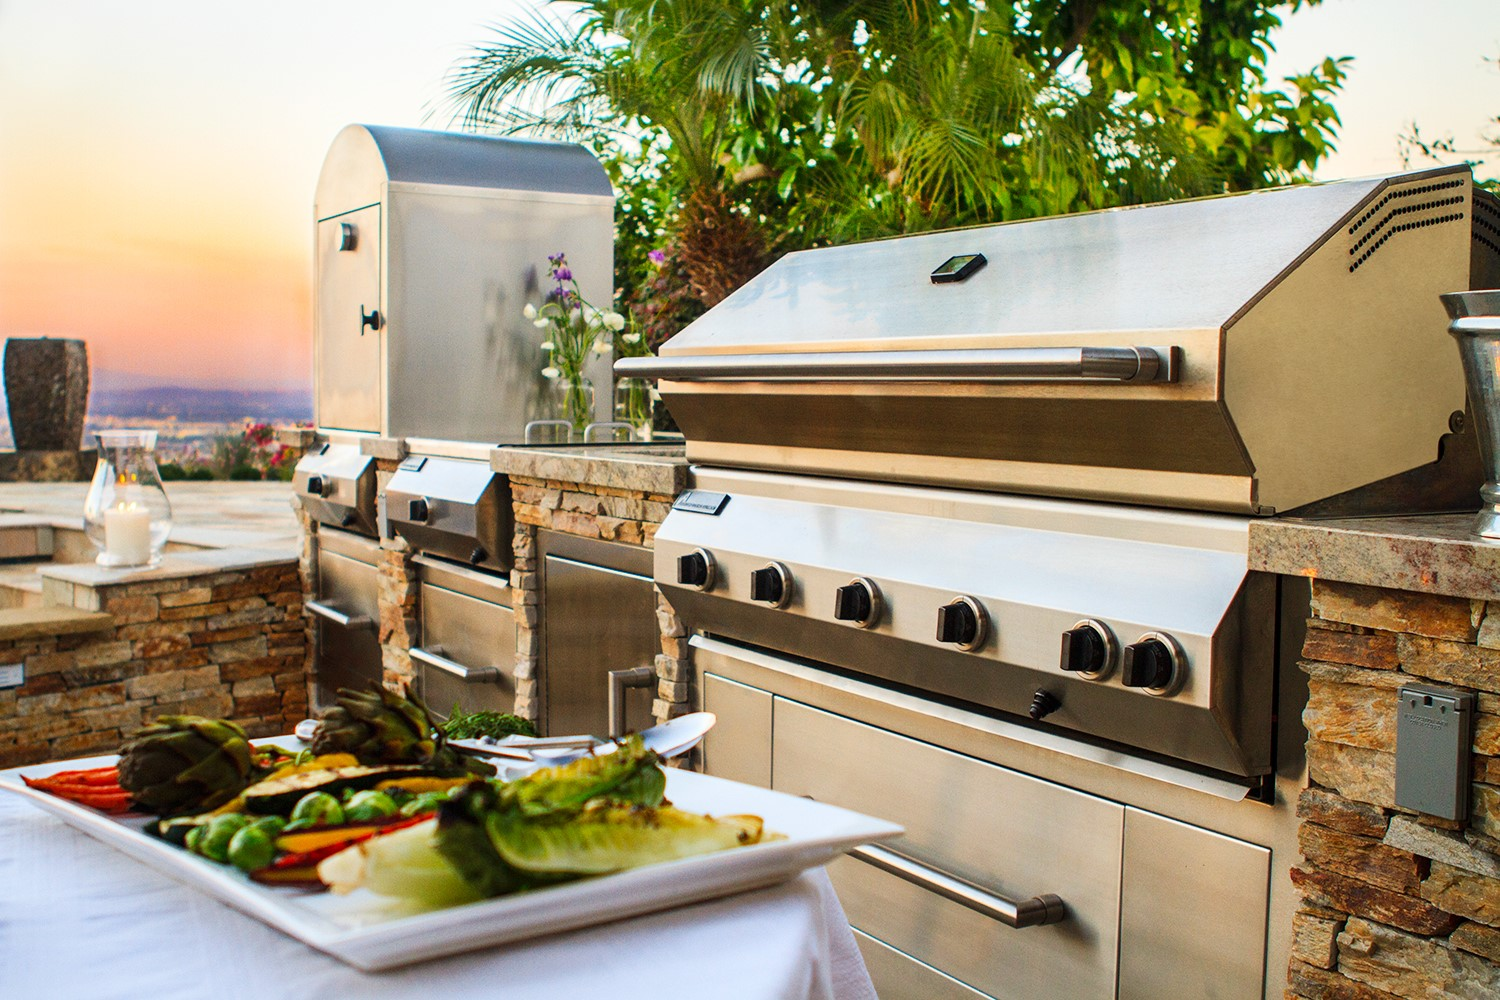 Outdoor kitchens american cooking equipment inc for Outdoor kitchen equipment